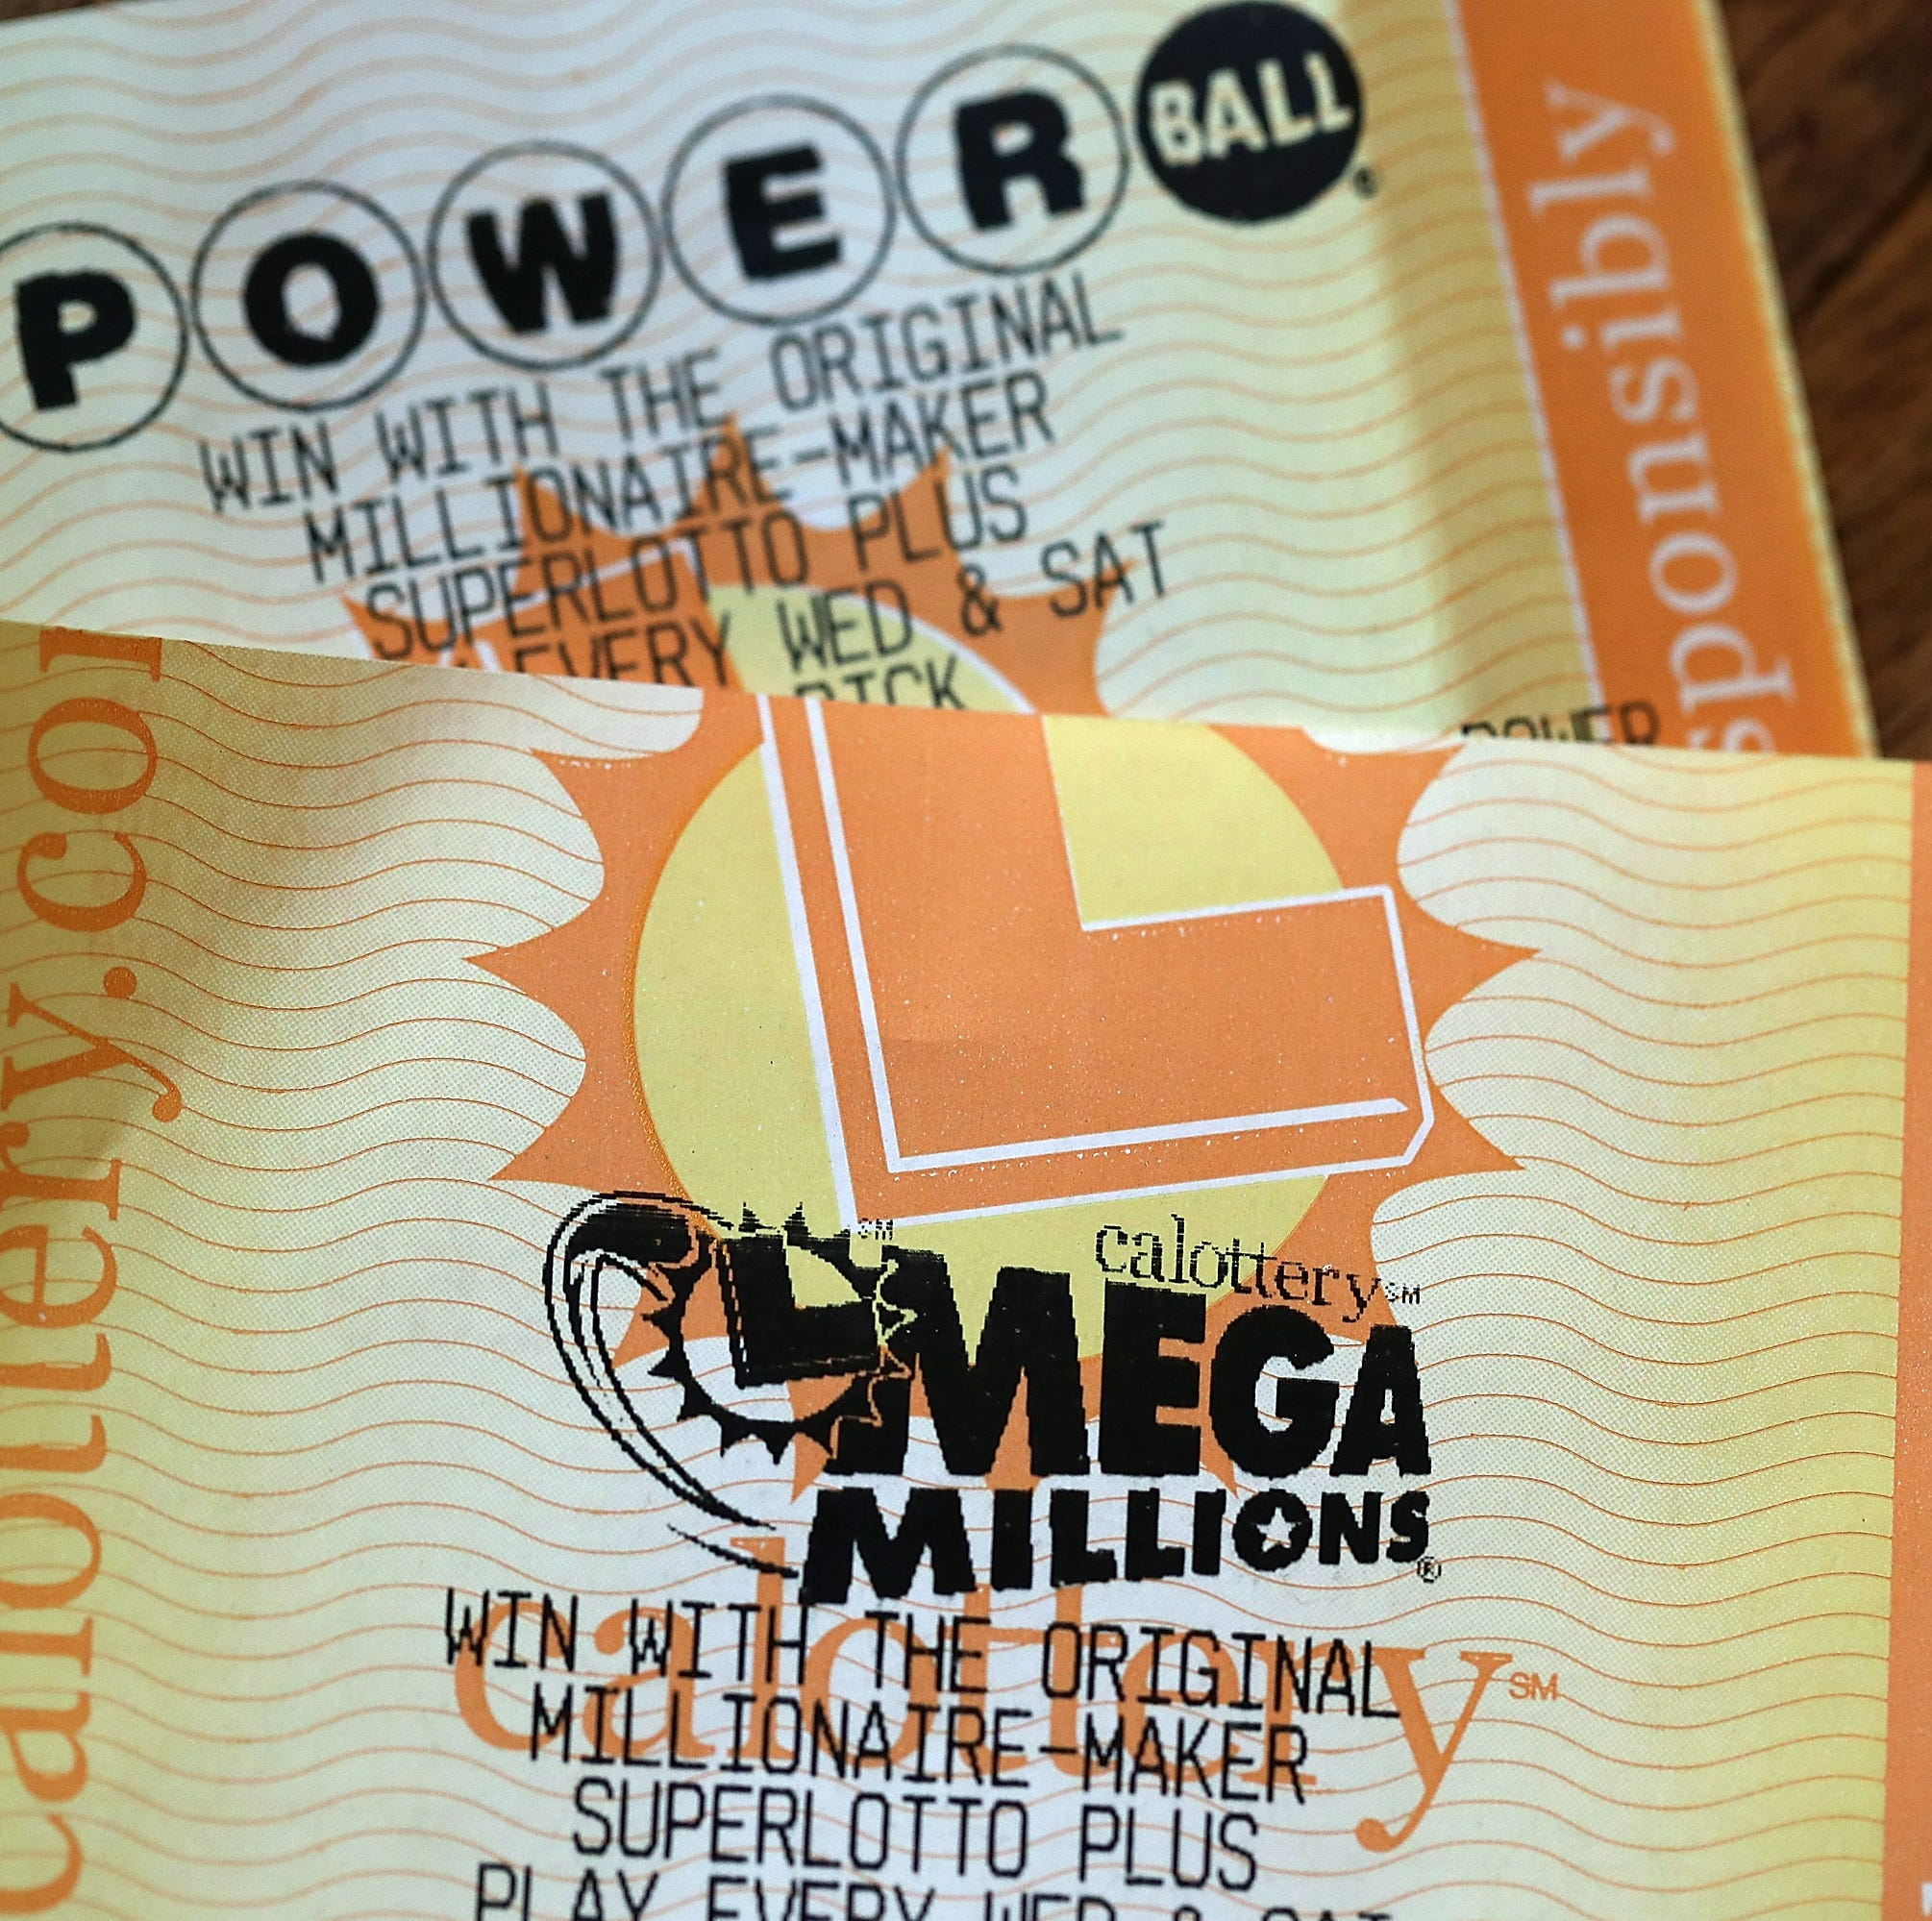 Combined Mega Millions, Powerball lottery jackpots climb to nearly $1B